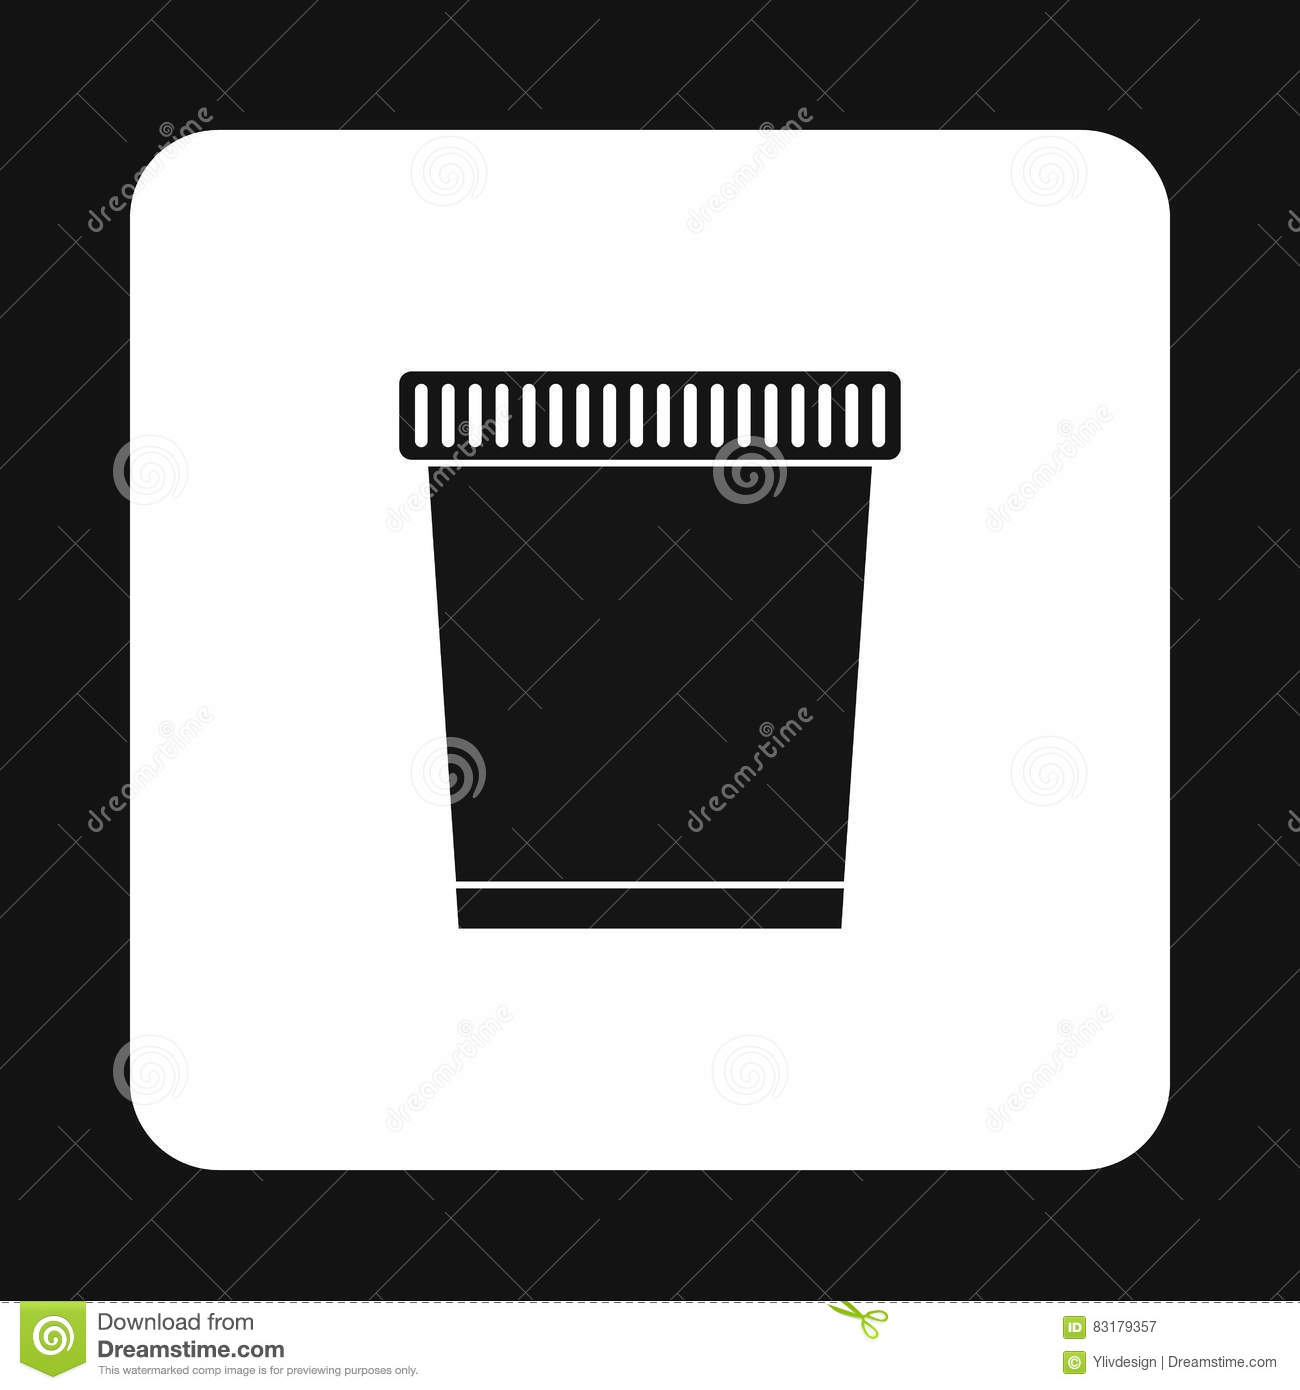 Garbage can icon, simple style